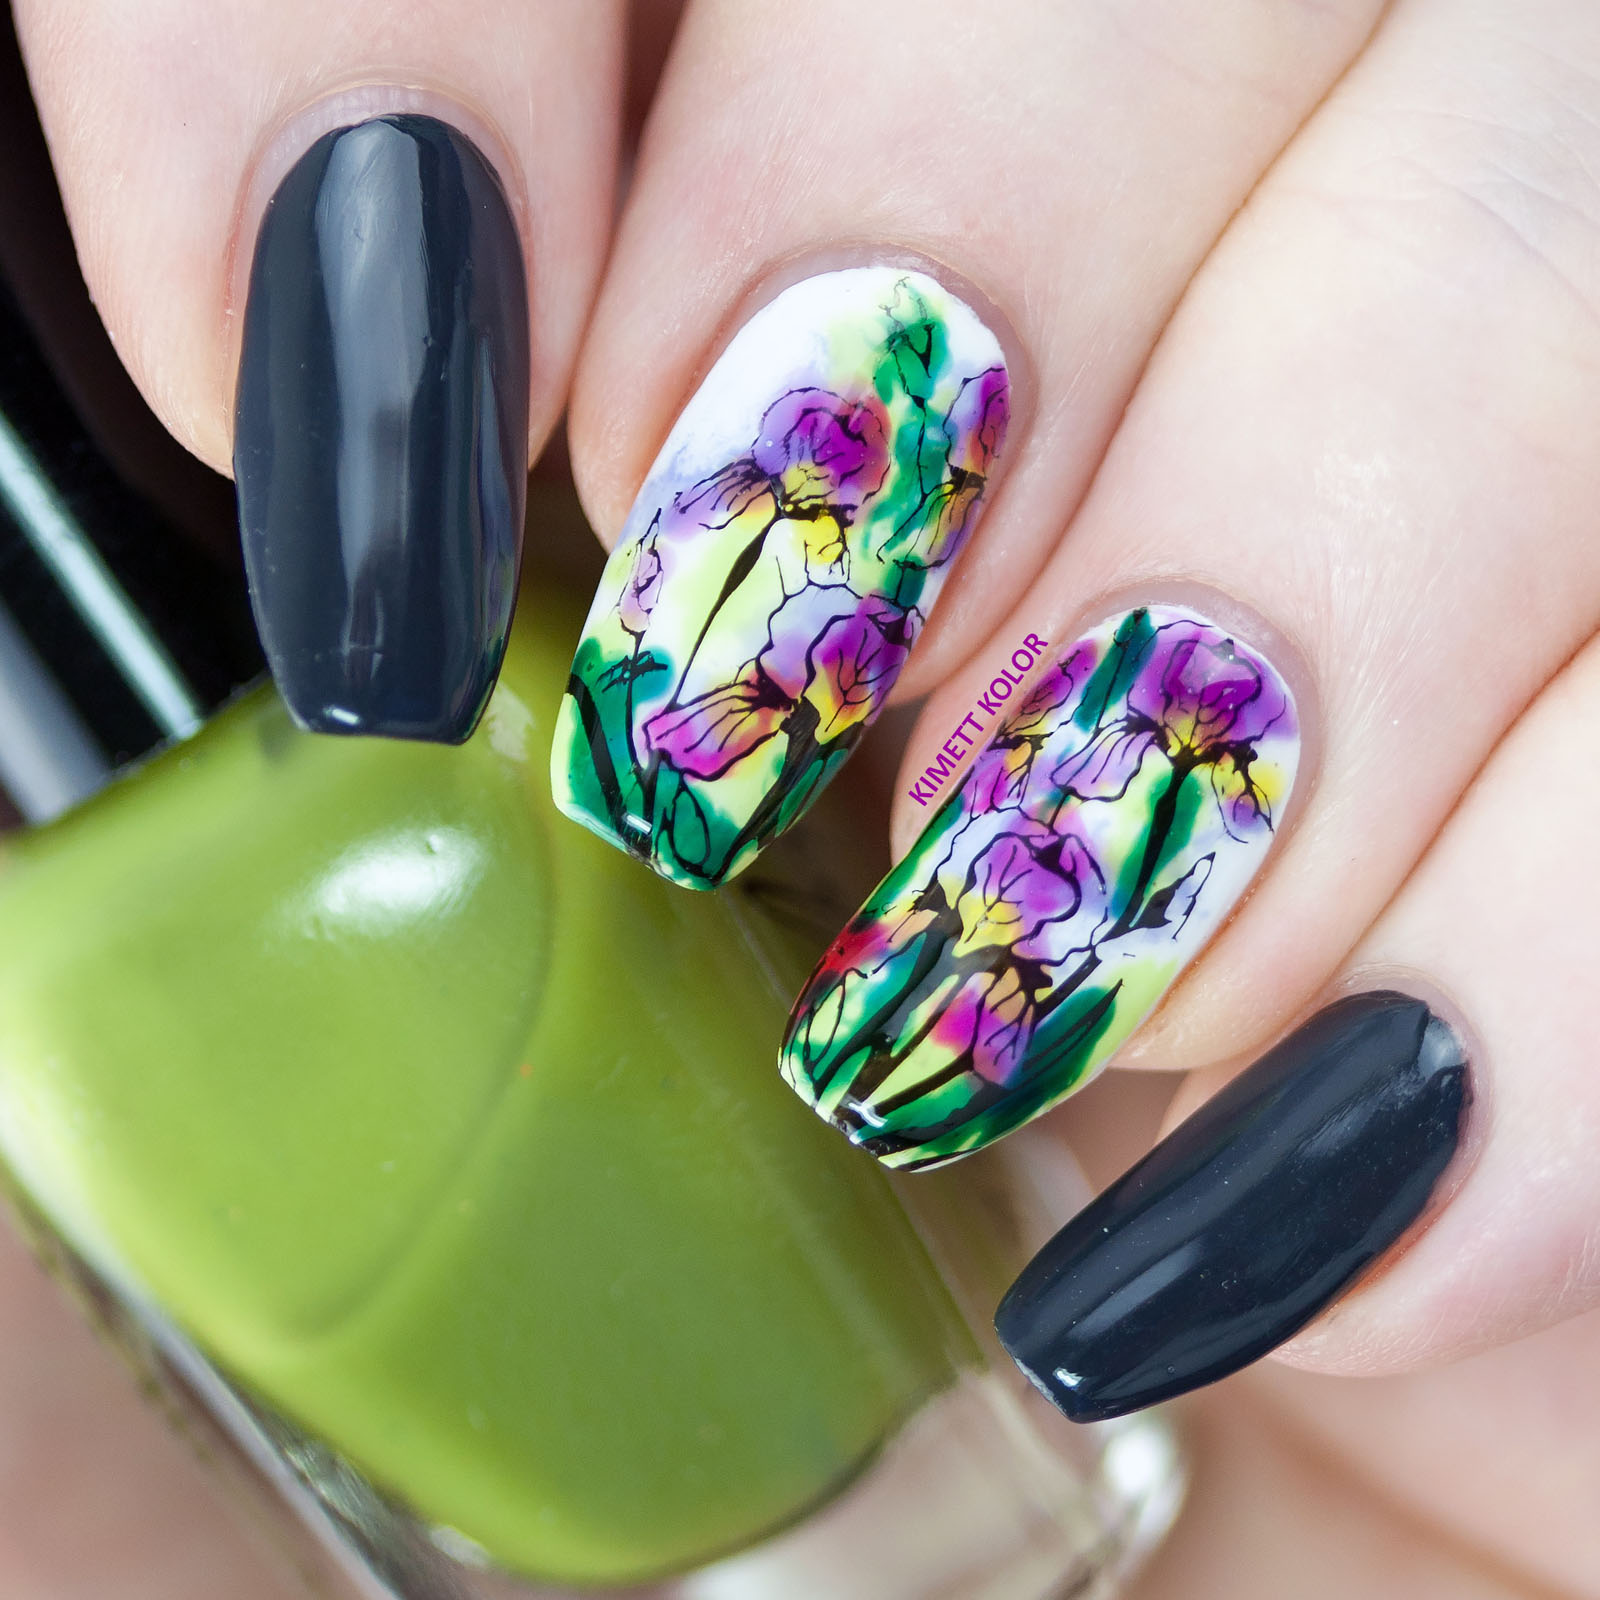 Kimett Kolor Lead Lighting nail art with iris flowers